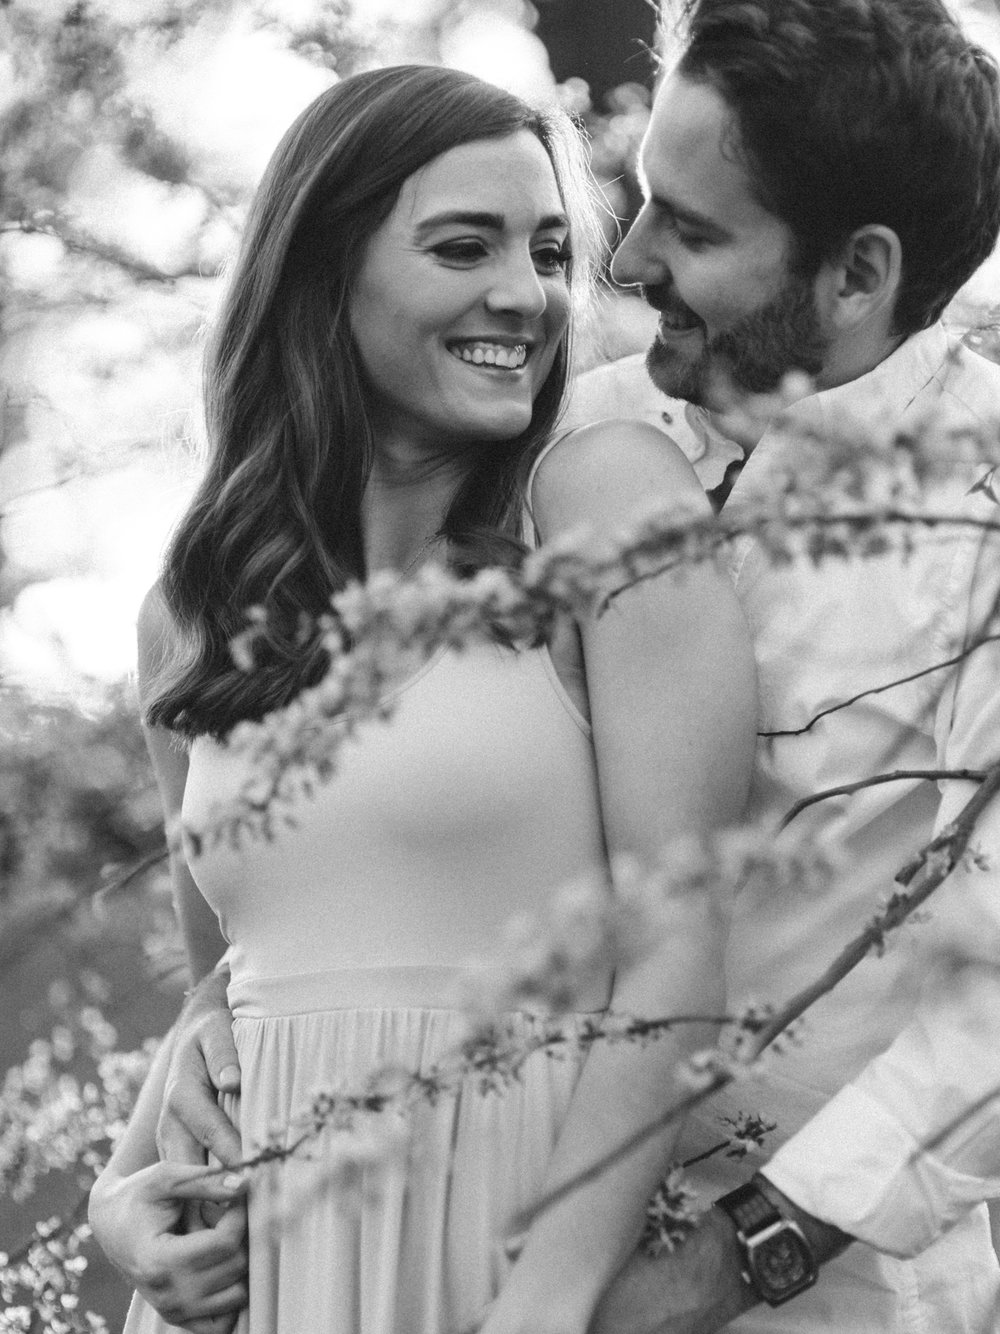 Chris & Heather's Engagement Session in Vineland Ontario Spring Blossoms Trees by Hush Hush Photography & Film Aidan Hennebry - 35.jpg